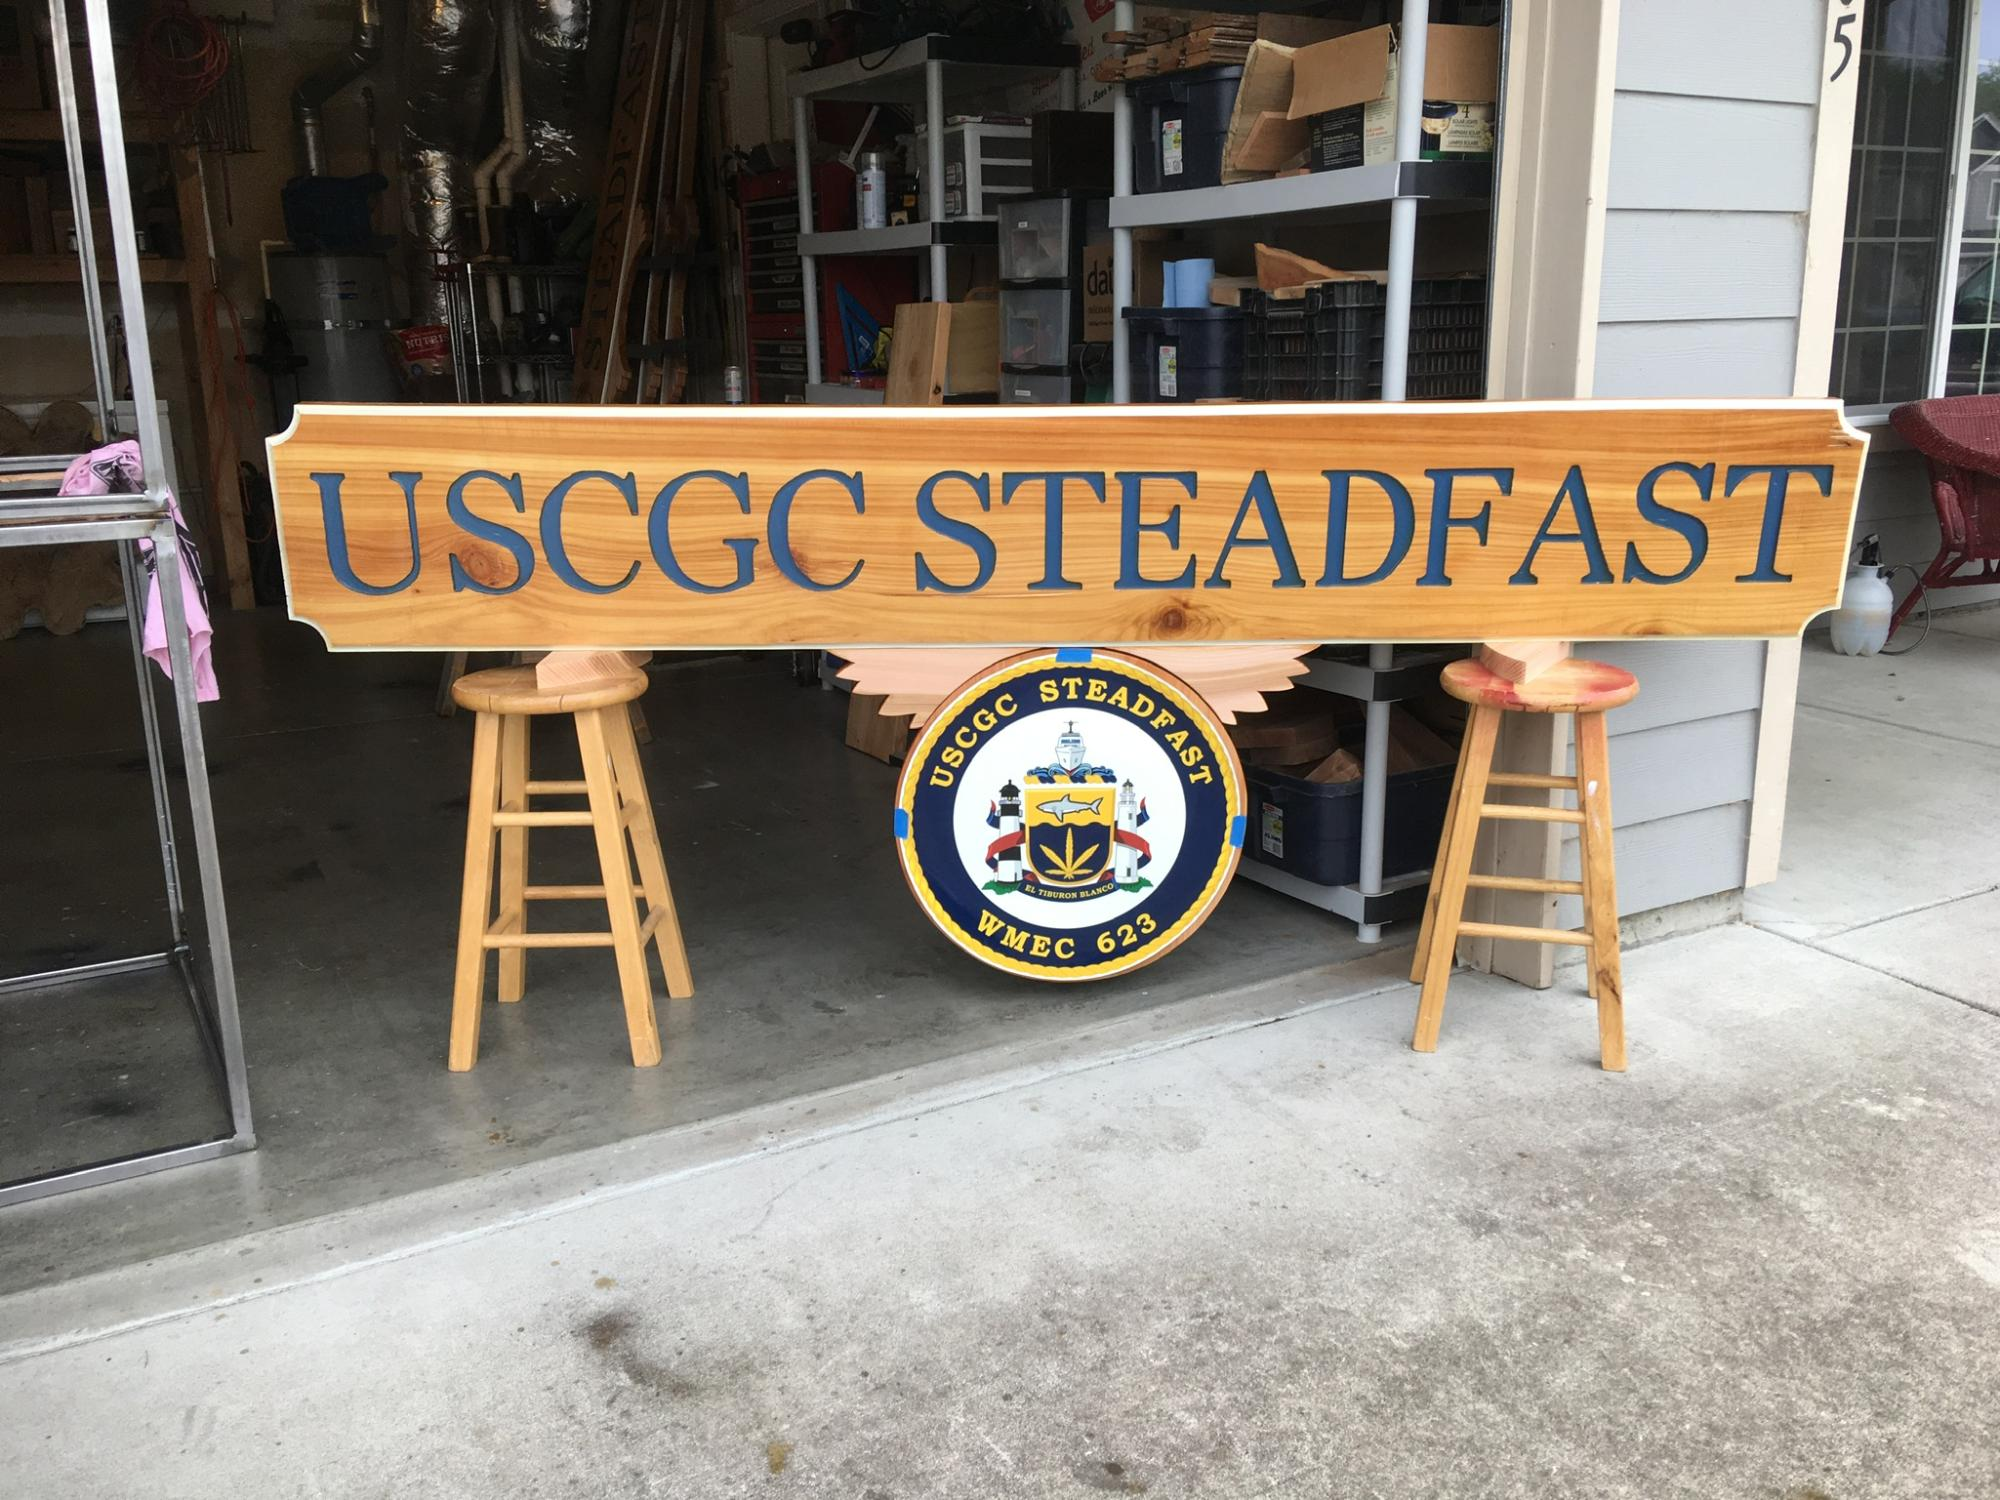 USCGC_Steadfast_Sign.jpg